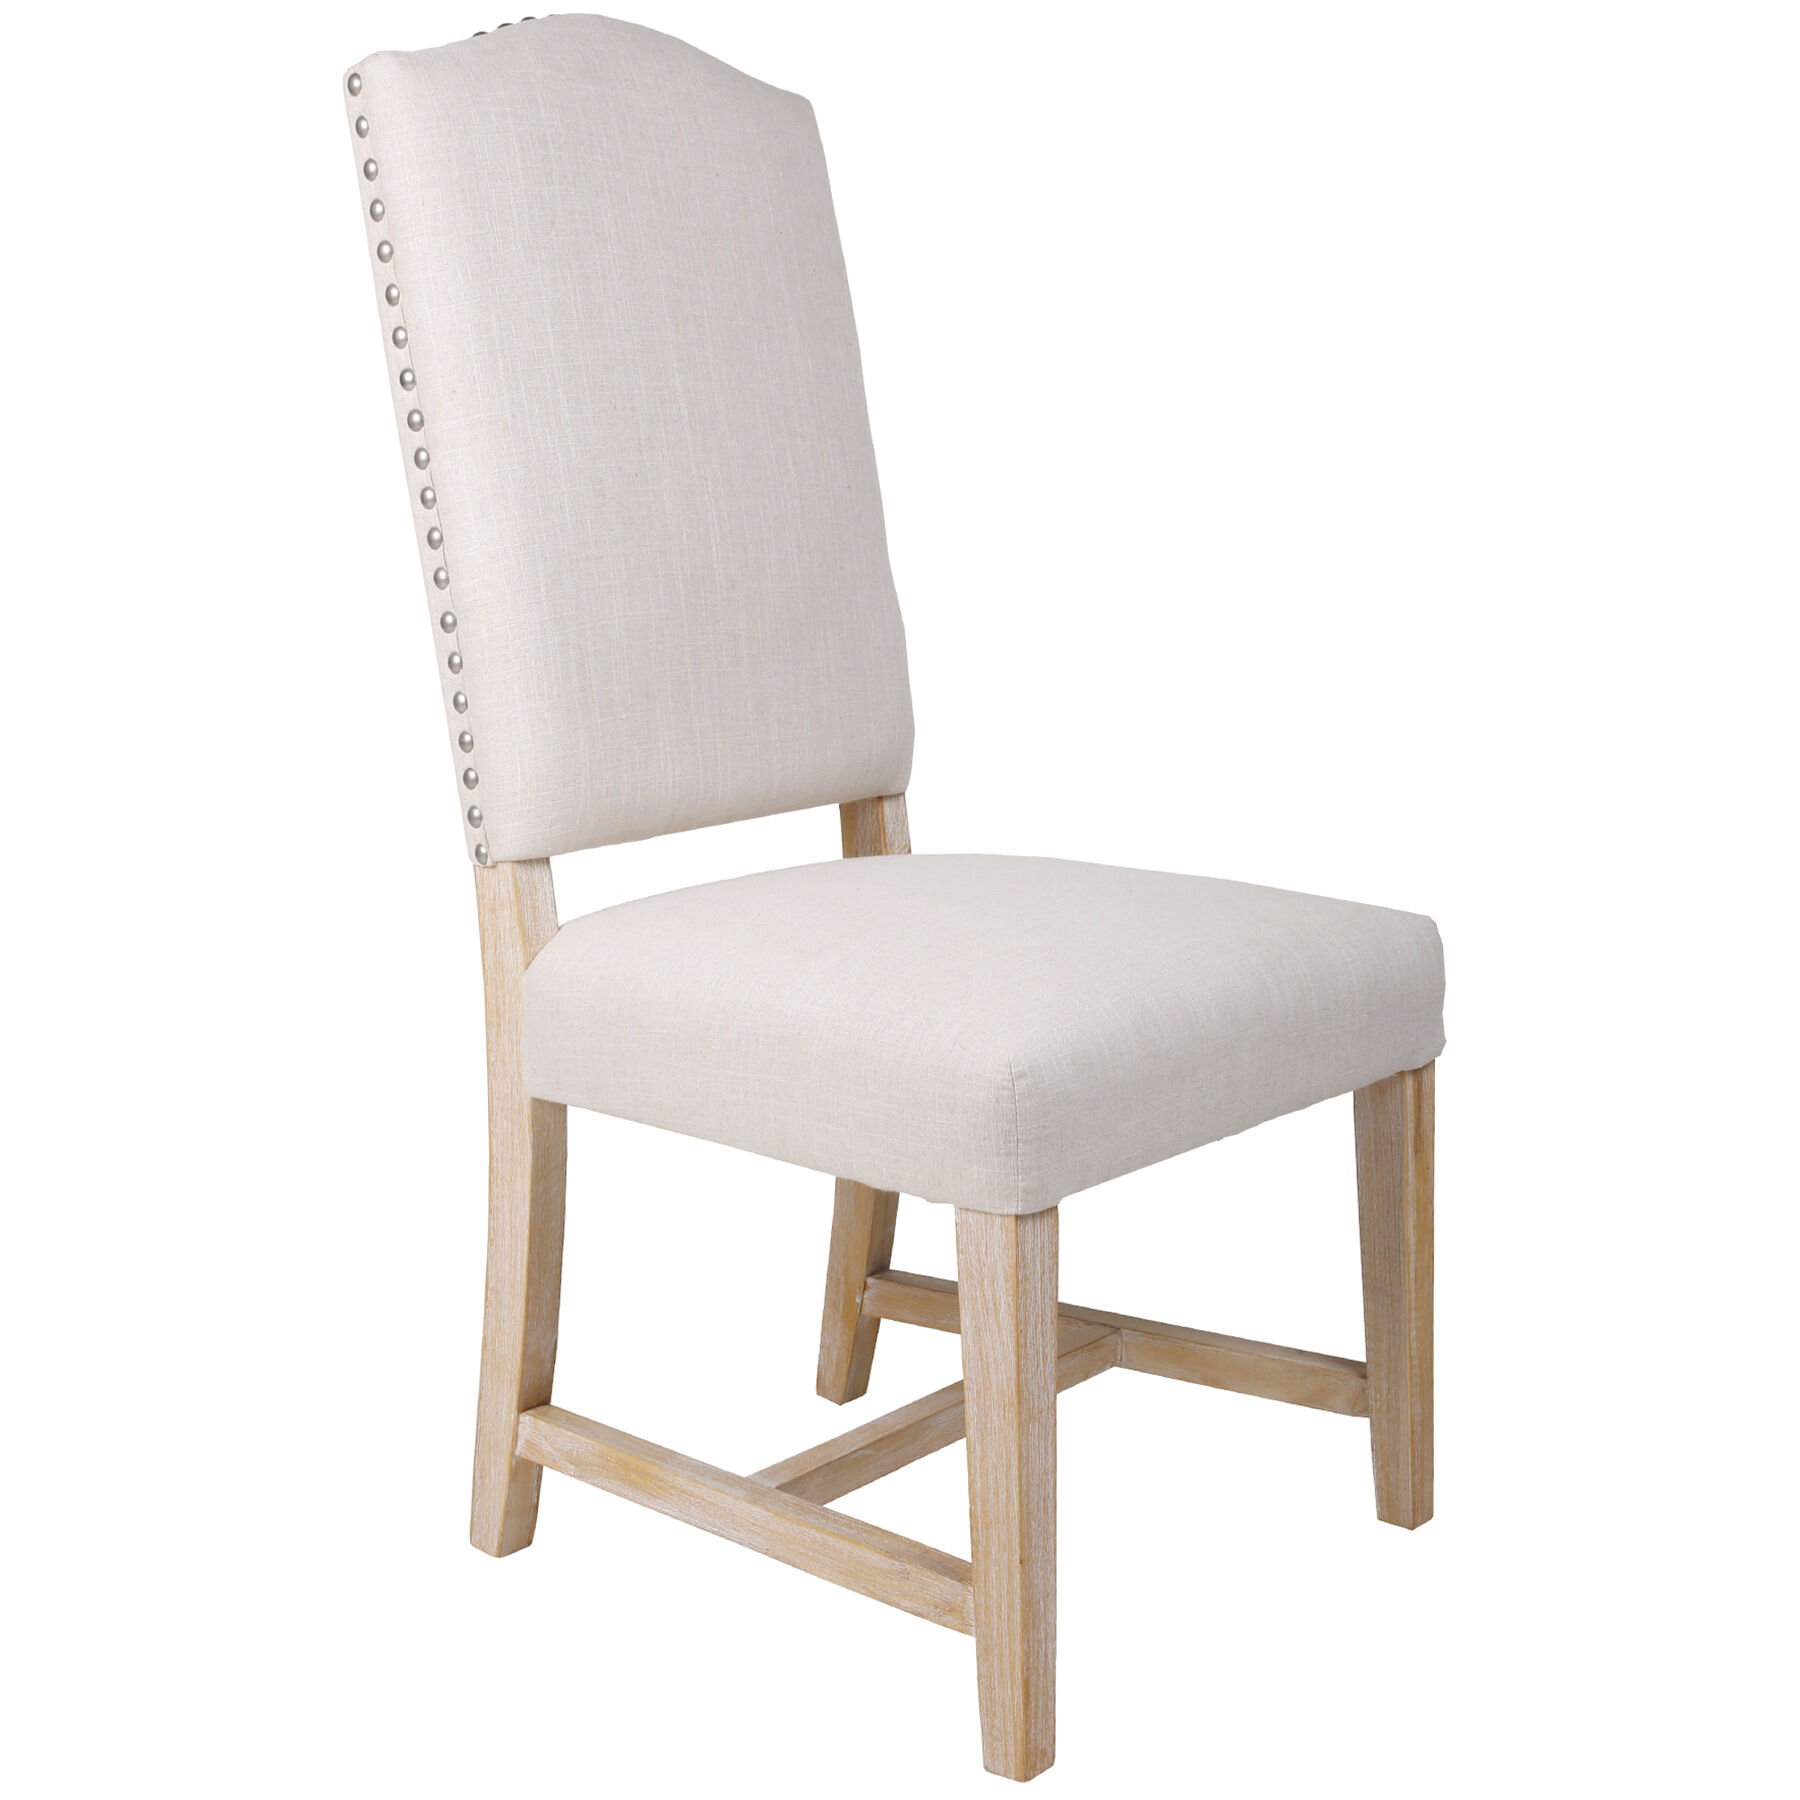 At Home Chairs Peninsula Dining Chair At Home